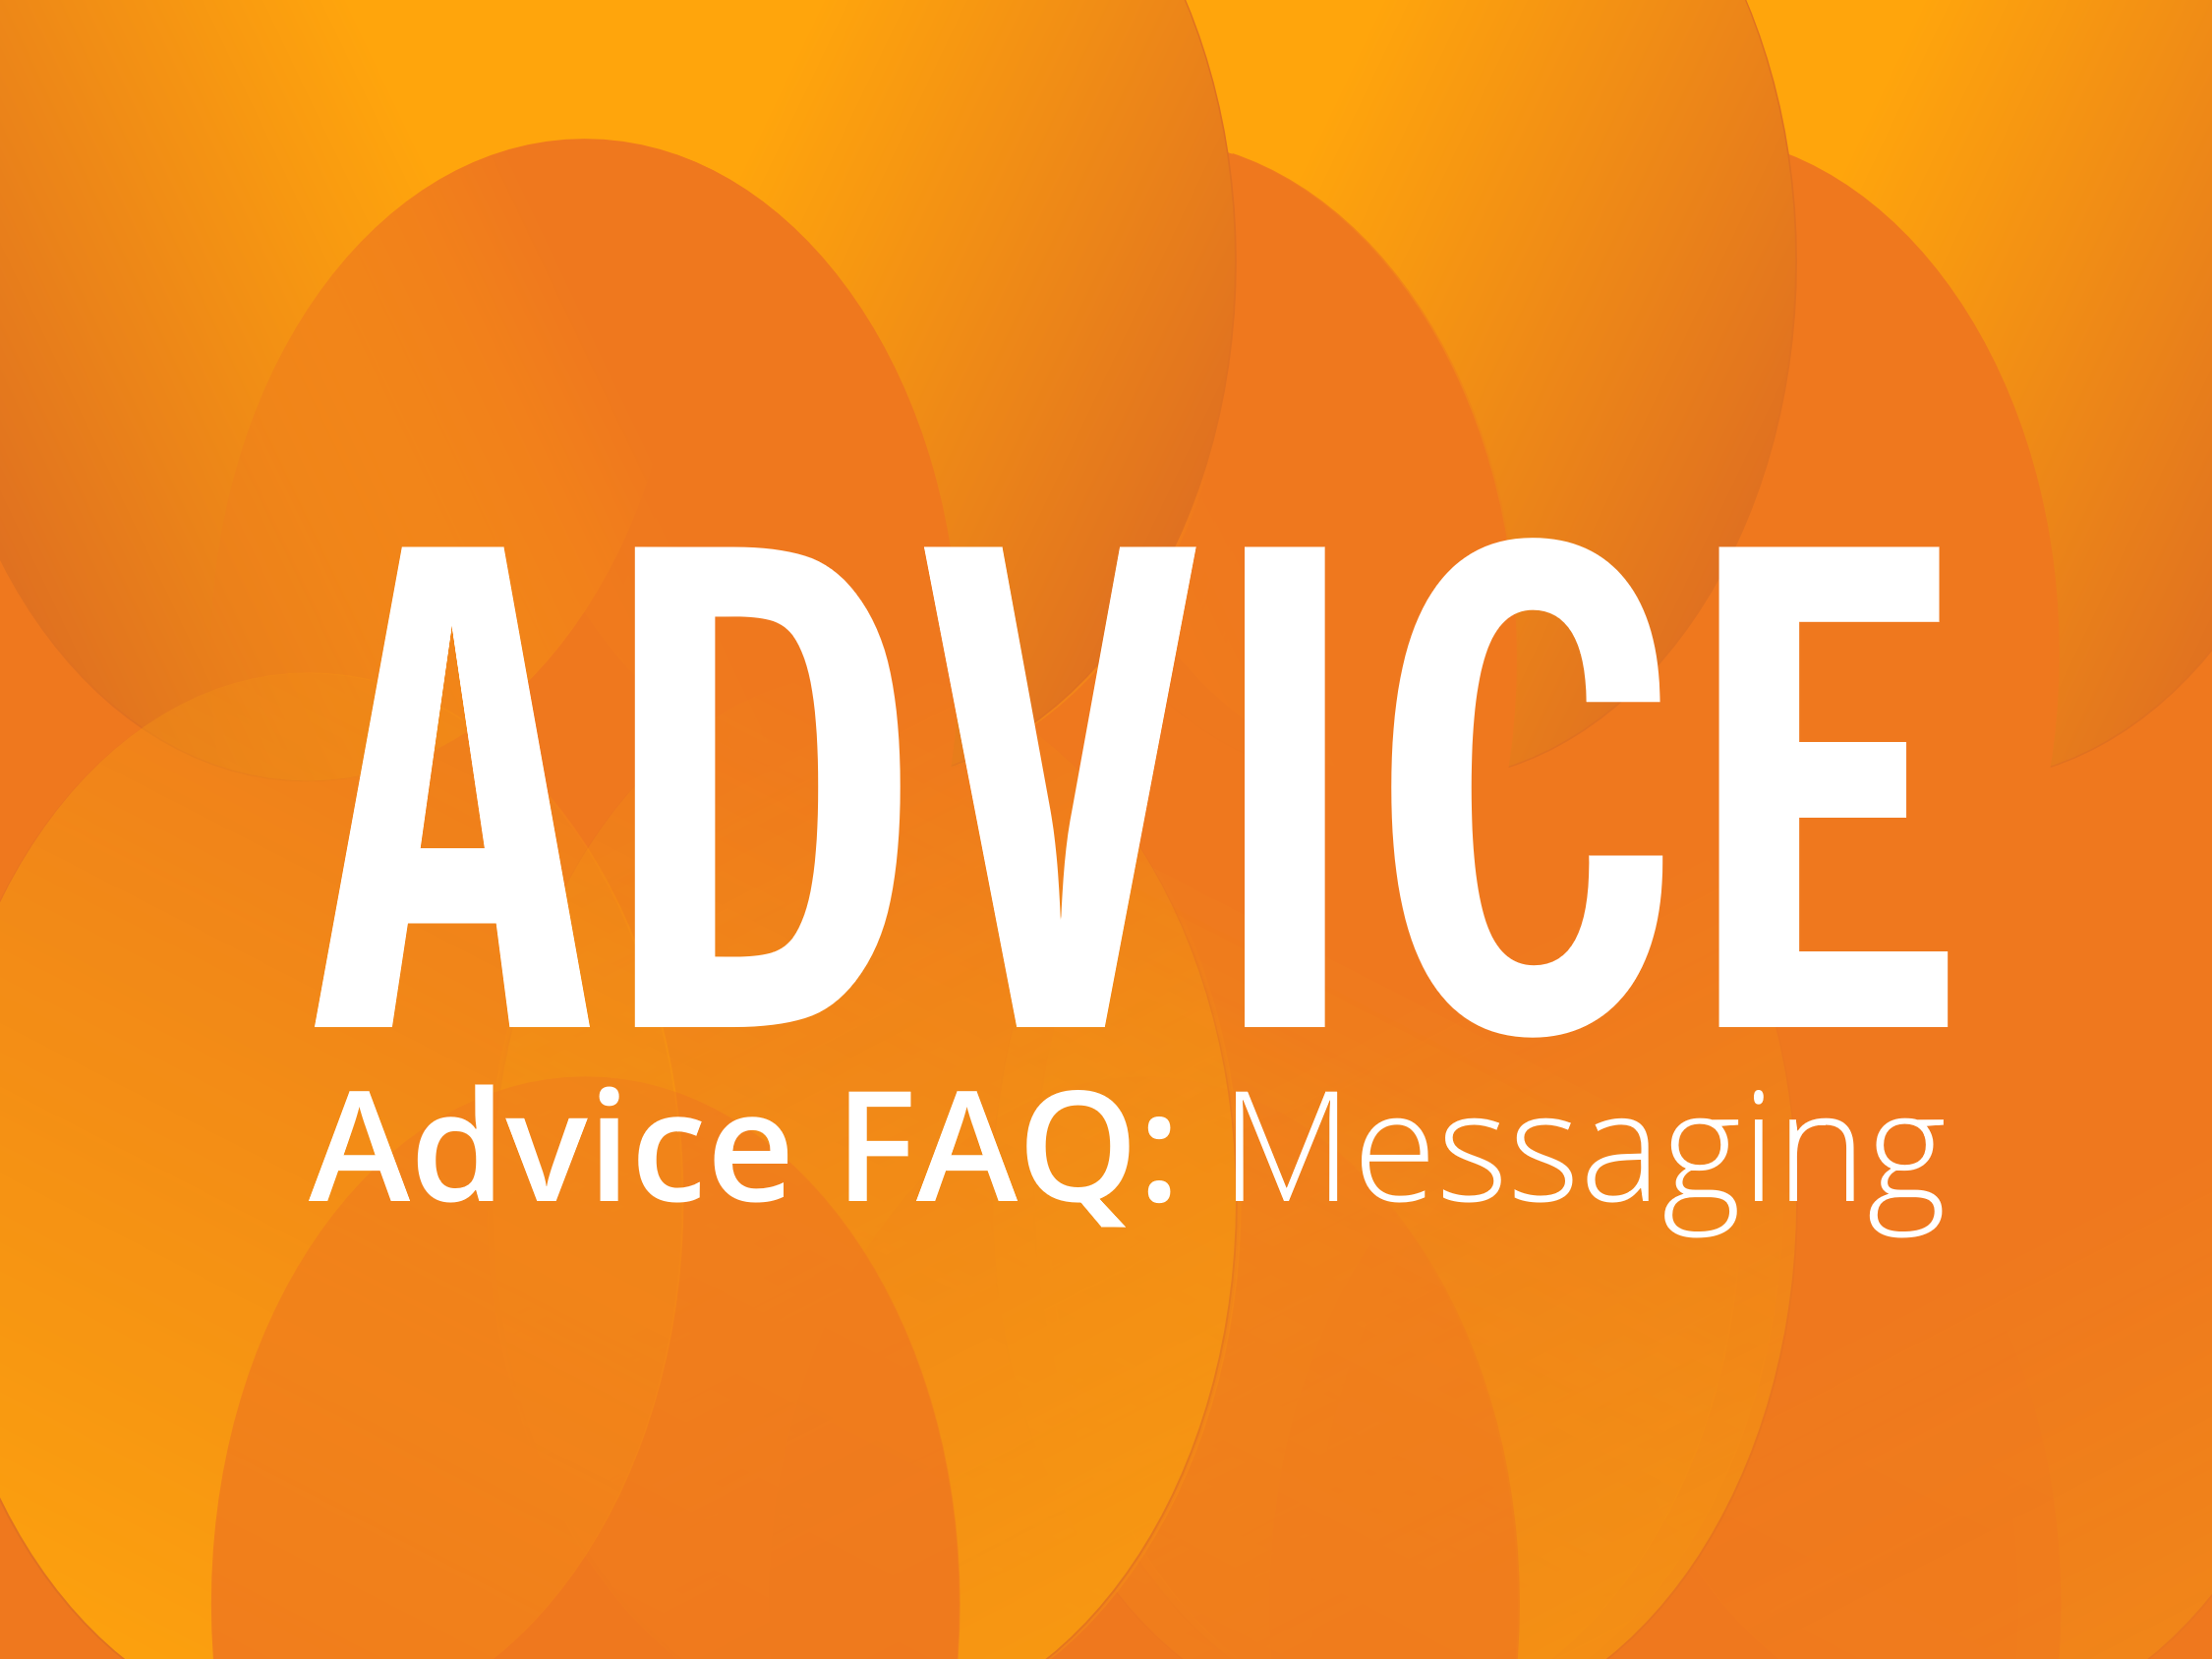 ADVICE: Messaging